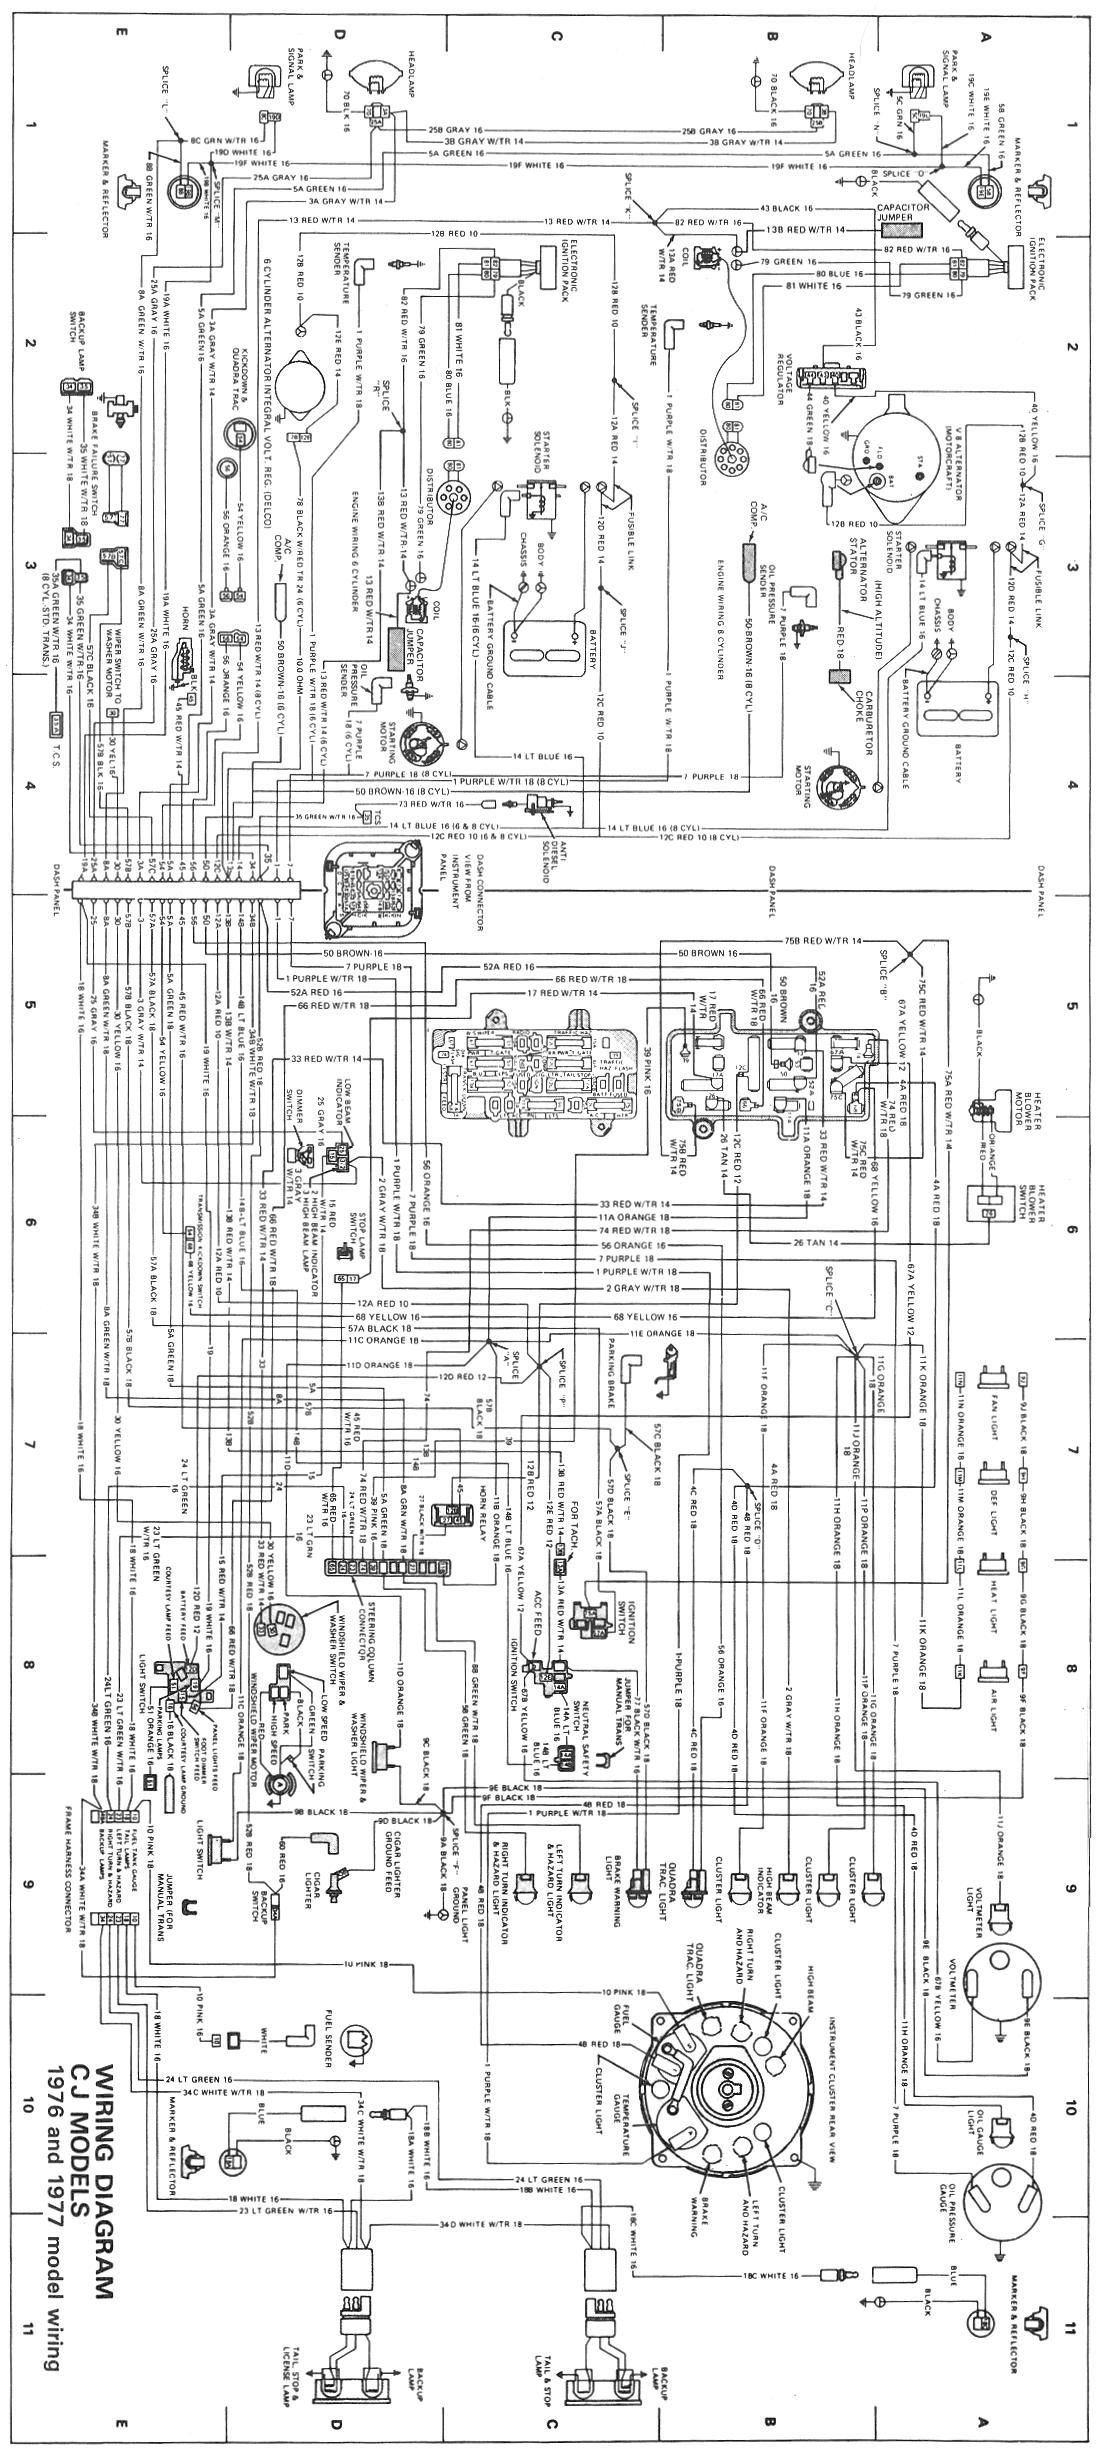 8d25ded6e3673519e155875e09844e5e cj wiring diagram 1976 1977 jpg 1,100�2,459 pixels 1976 jeep cj5 Painless Wiring Harness Diagram at arjmand.co